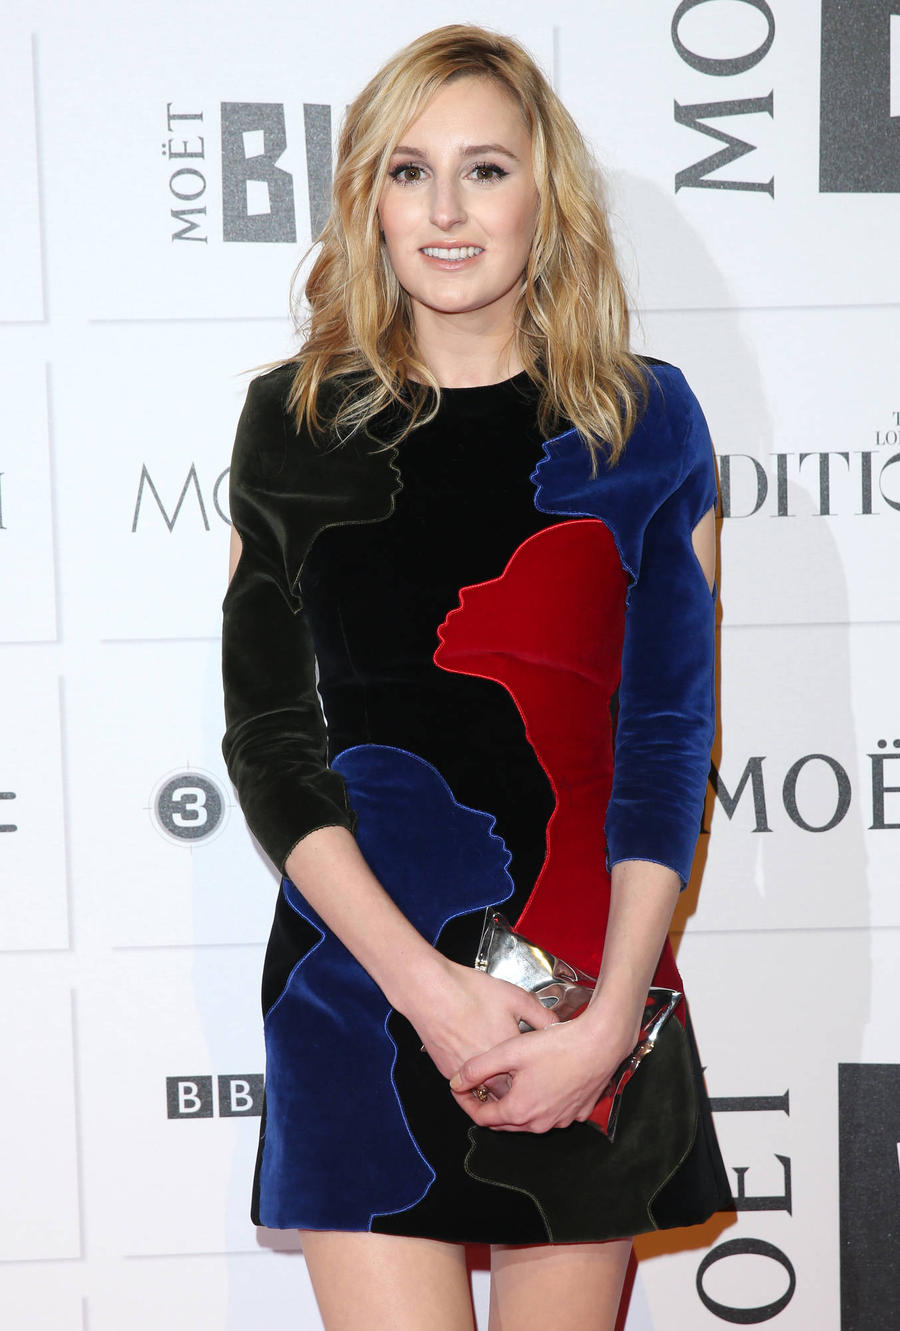 Laura Carmichael Dating Downton Abbey Co-star - Report